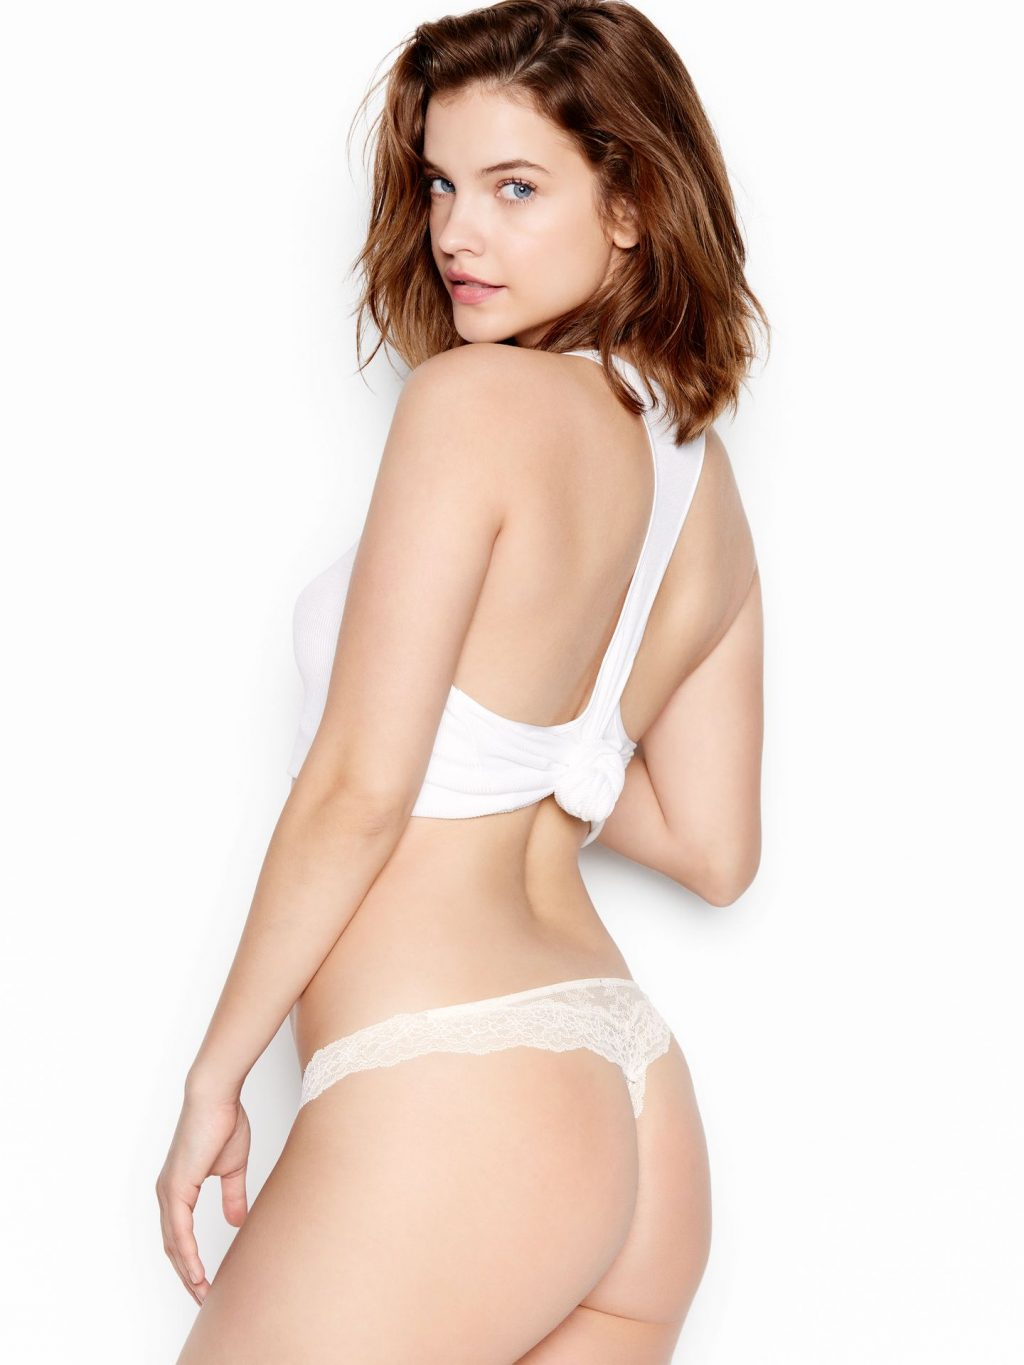 Barbara Palvin See Through & Sexy (79 Photos)